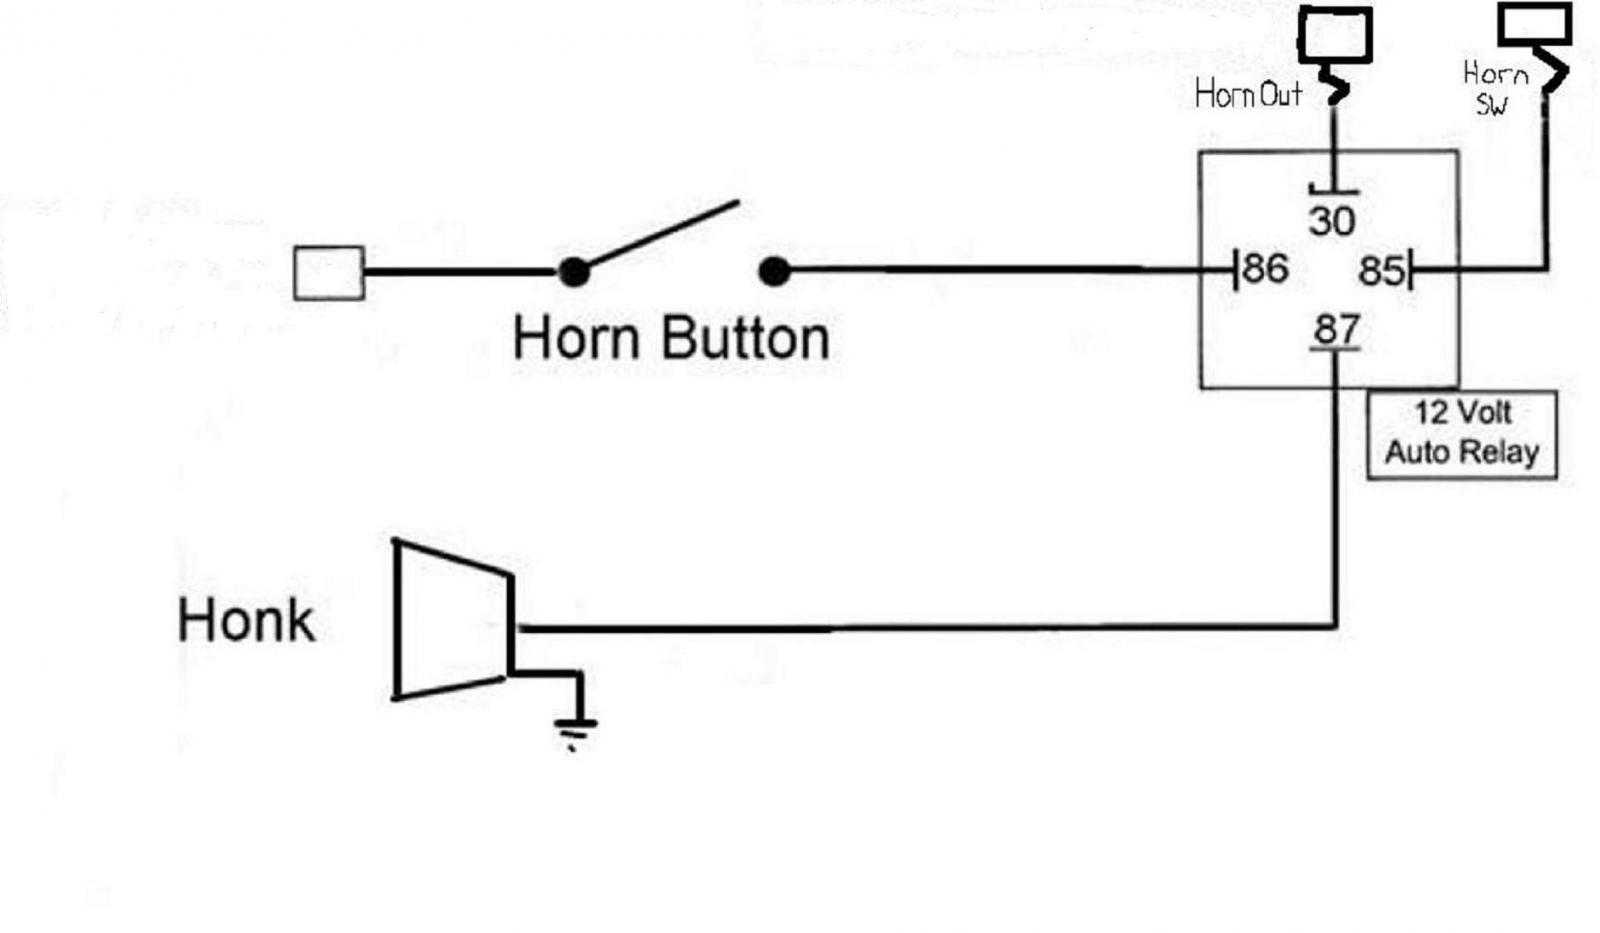 How To Wire A Horn on | Wiring Diagram Up A Horn Relay Wiring on wiring a neutral safety switch, wiring a water pump, wiring a dimmer switch, wiring a fuel pump, wiring a wiper motor, wiring a turn signal switch, wiring a circuit breaker, wiring a oil pressure switch, wiring a window motor, wiring a combination switch, wiring a blower motor, wiring a starter switch,